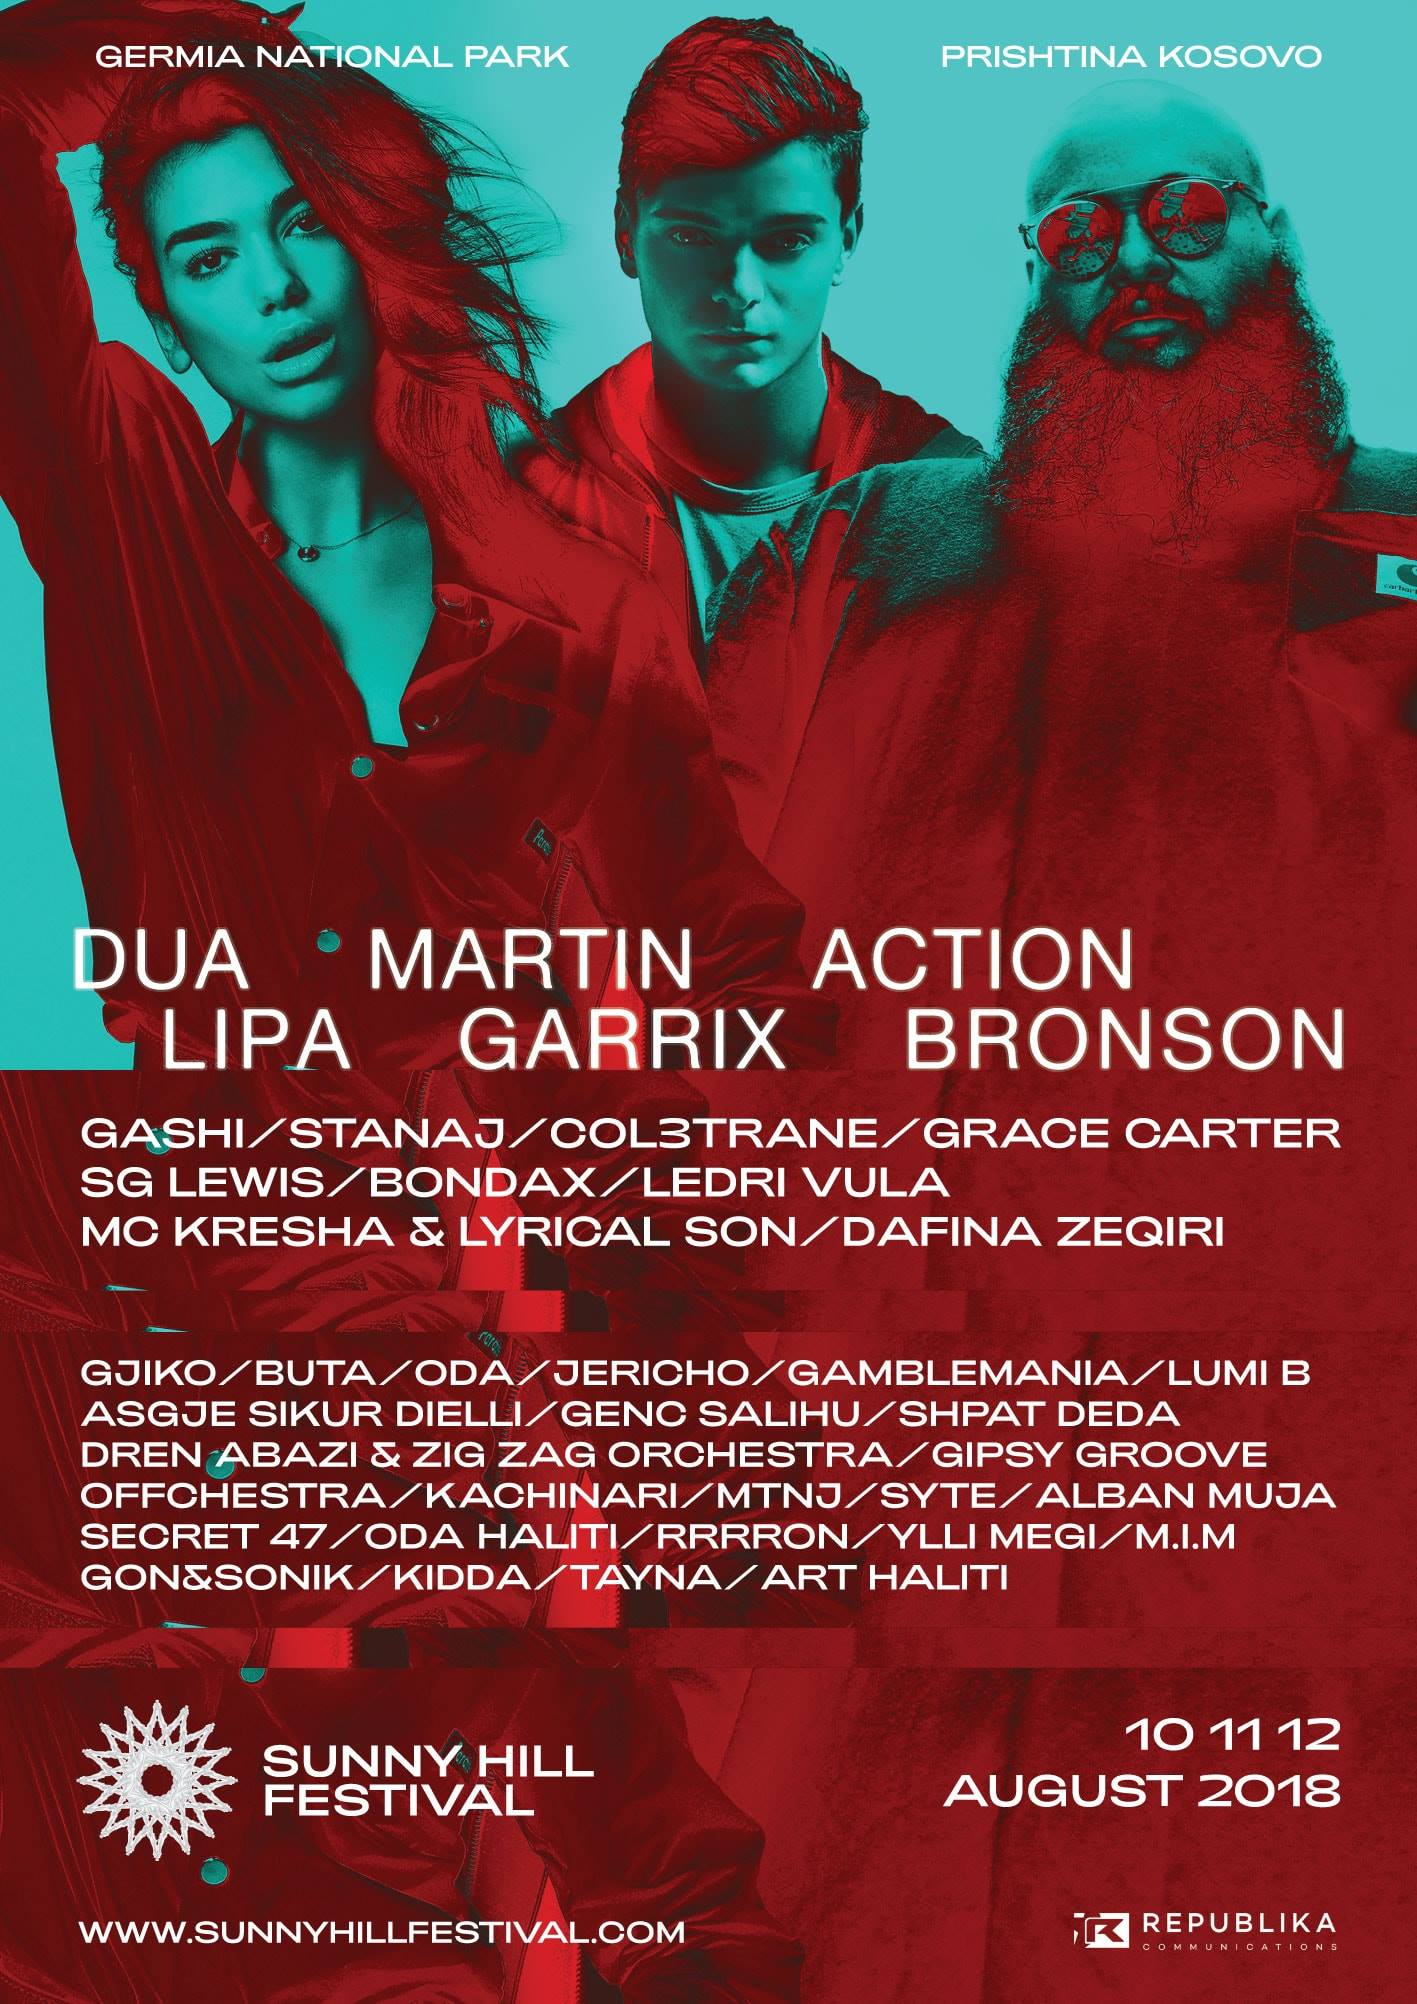 Summer festival gets together music galactic stars Dua Lipa, Action Bronson & Martin Garrix, with Last2ticket event management tools.